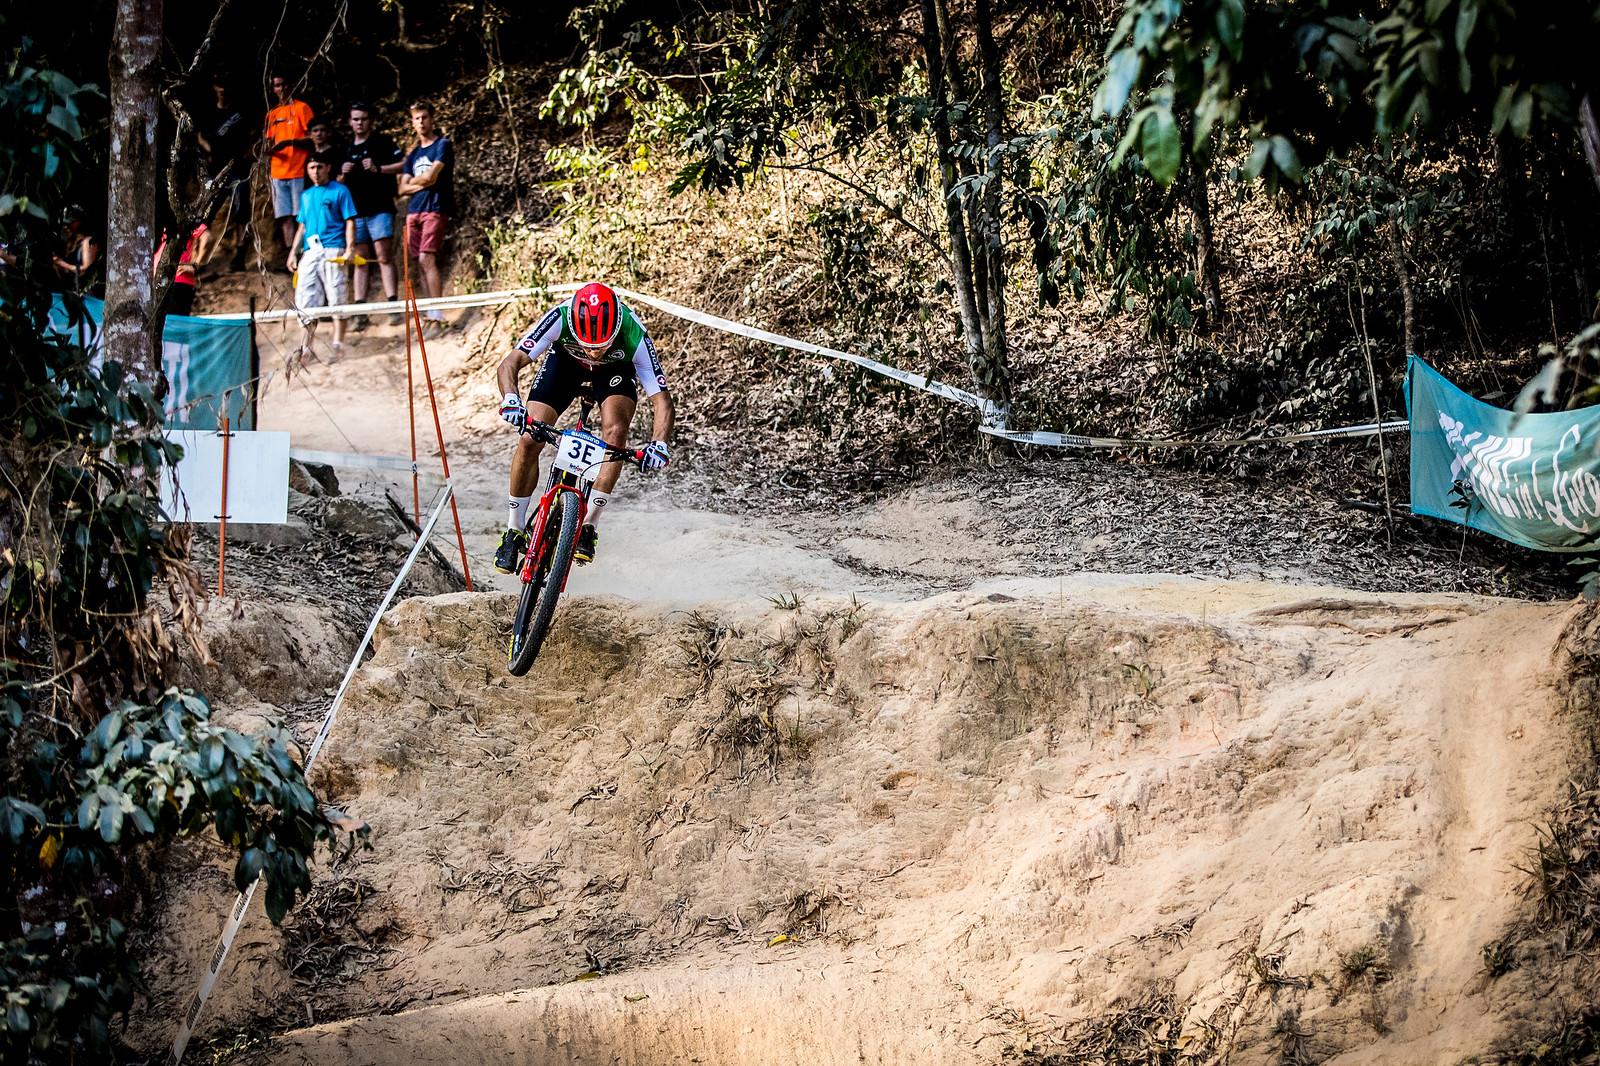 Nino Schurter anchoring the last leg in the team relay and making the pass for gold for Switzerland.